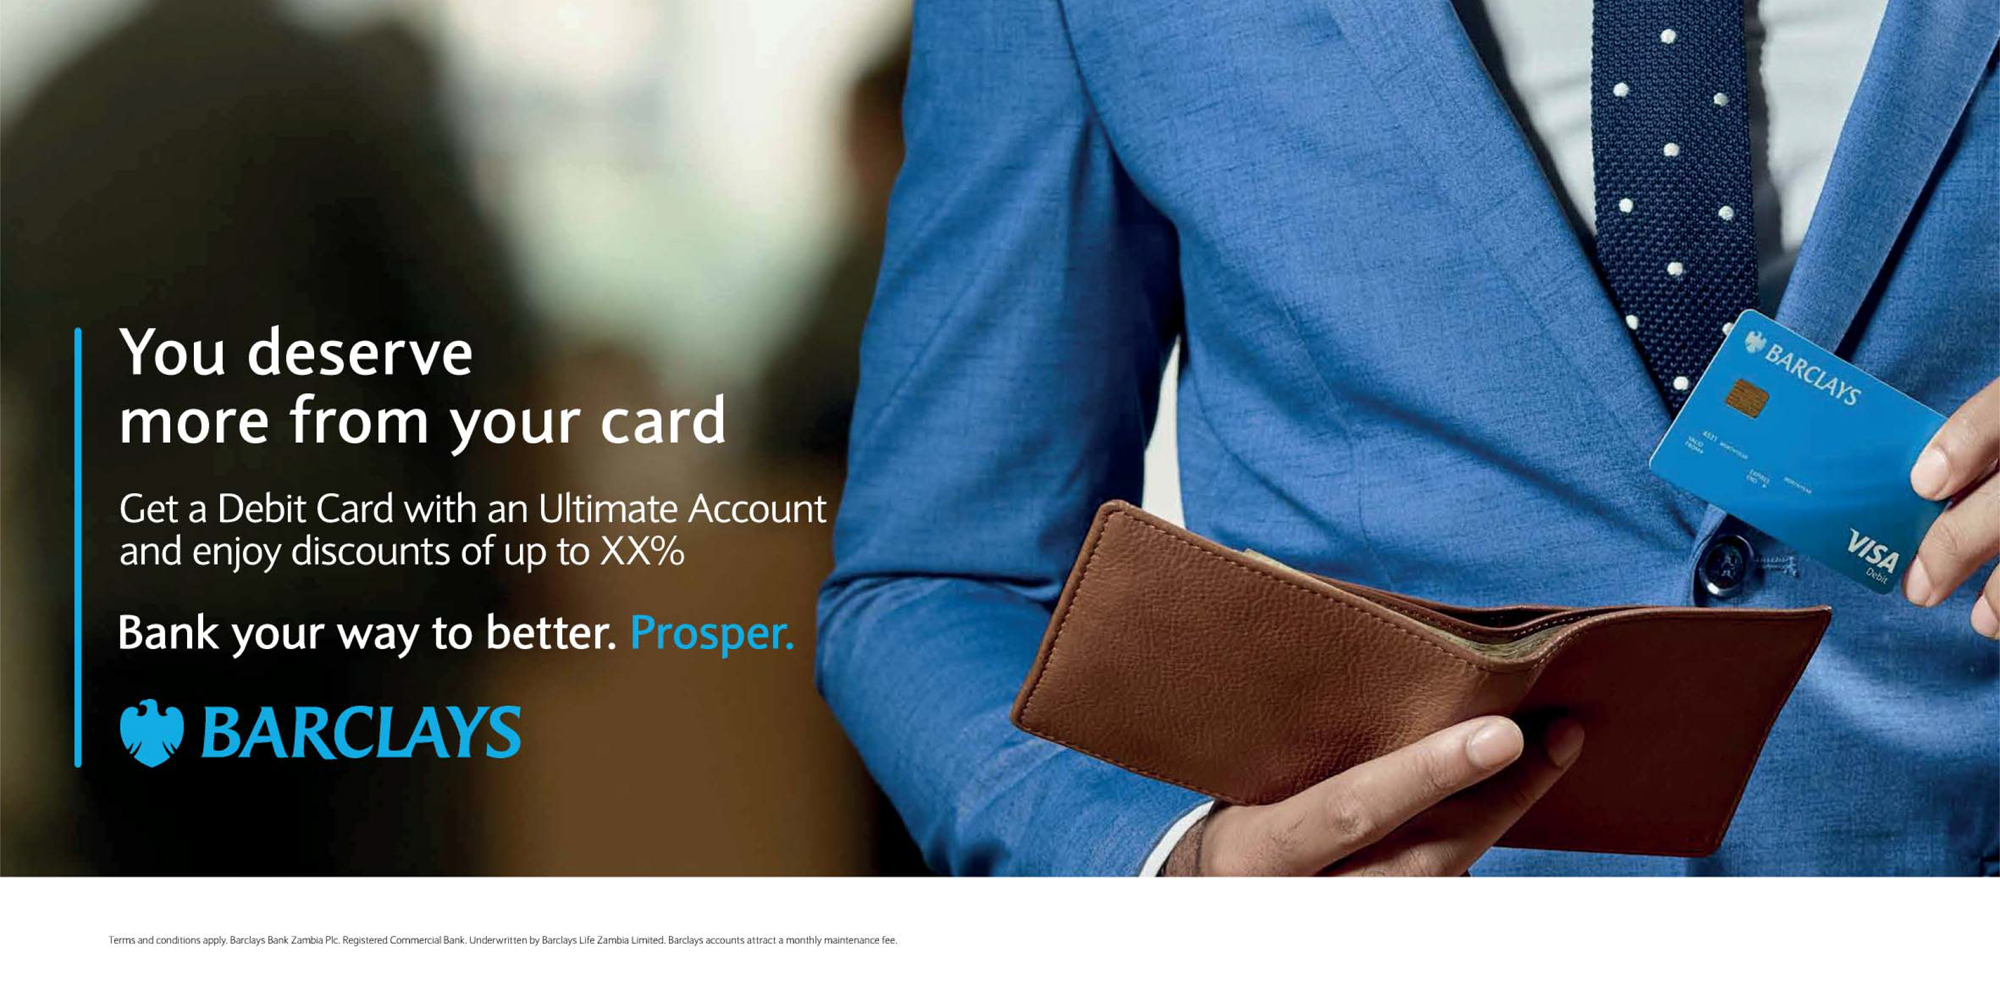 Barclays Personal Banking Campaign Toolkit 26 APRIL-67.jpg